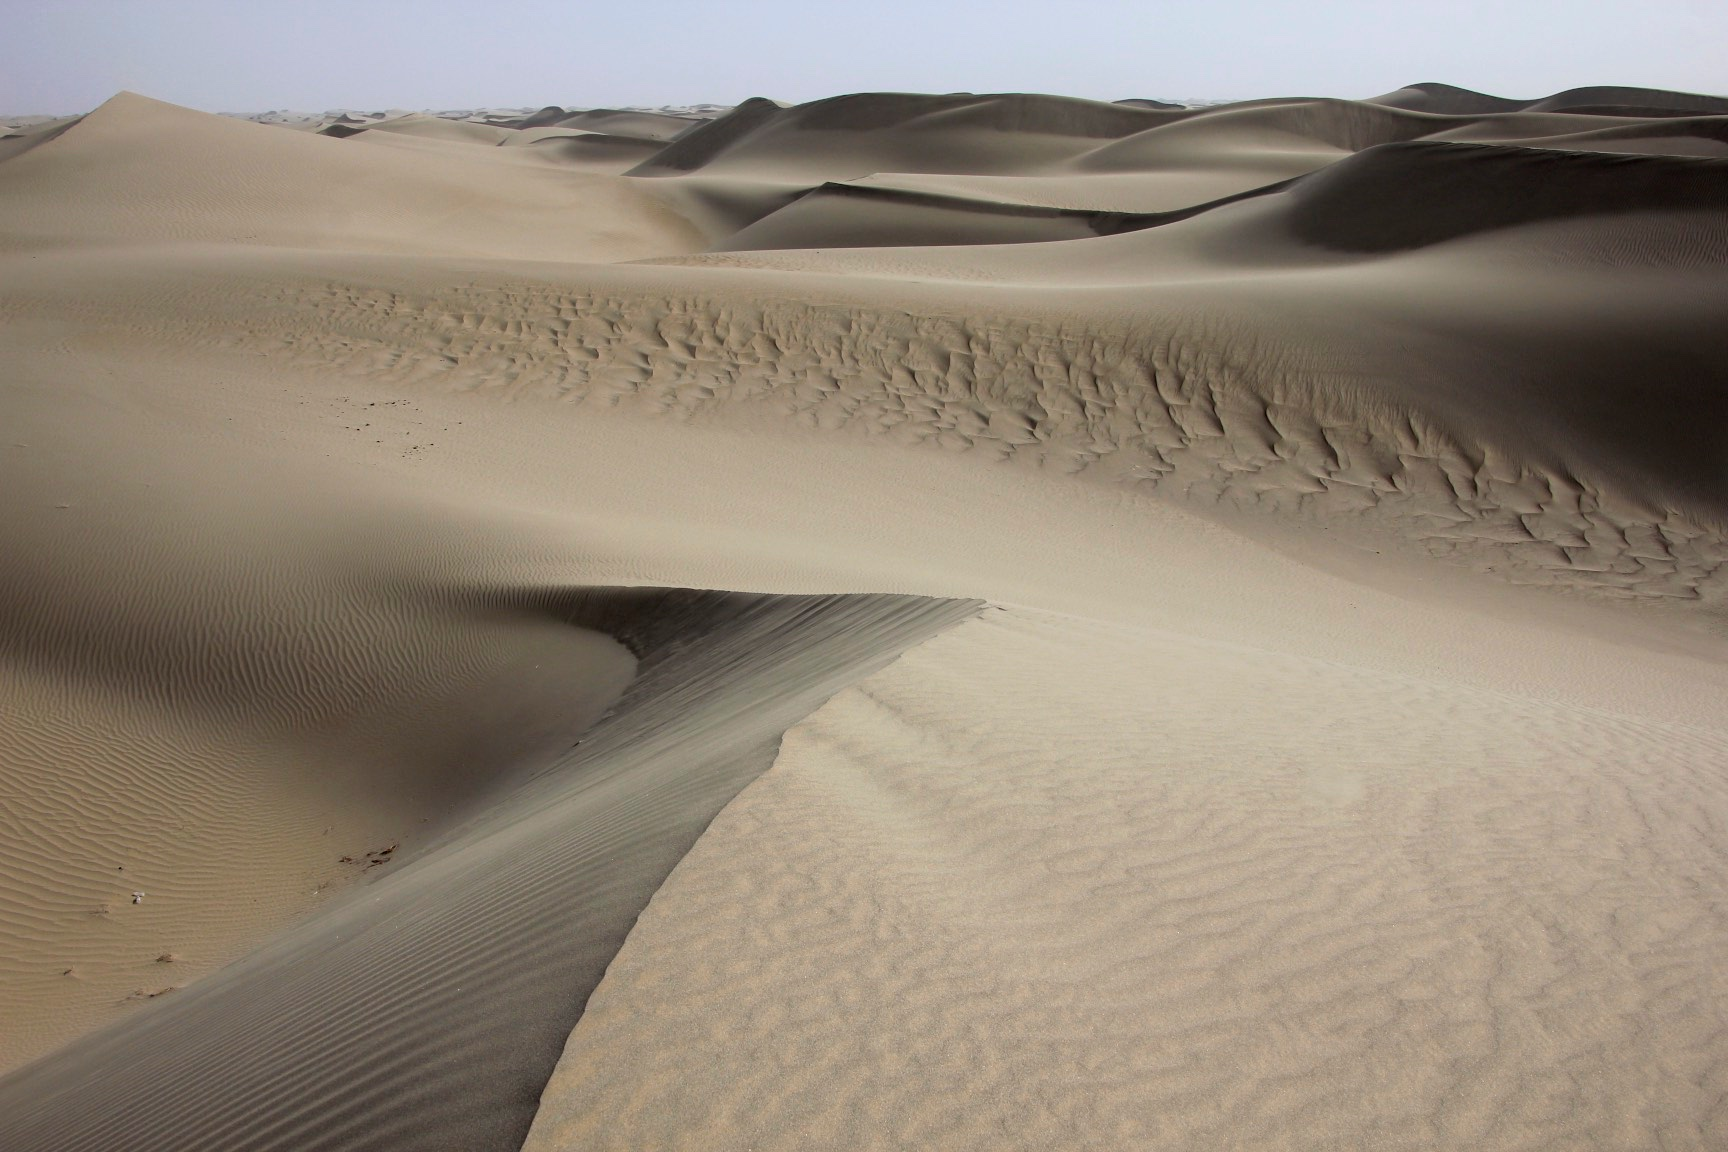 The Taklamakan Desert has very little water, therefore it is hazardous to cross. Merchant caravans on the Silk Road would stop for relief at the thriving oasis towns.